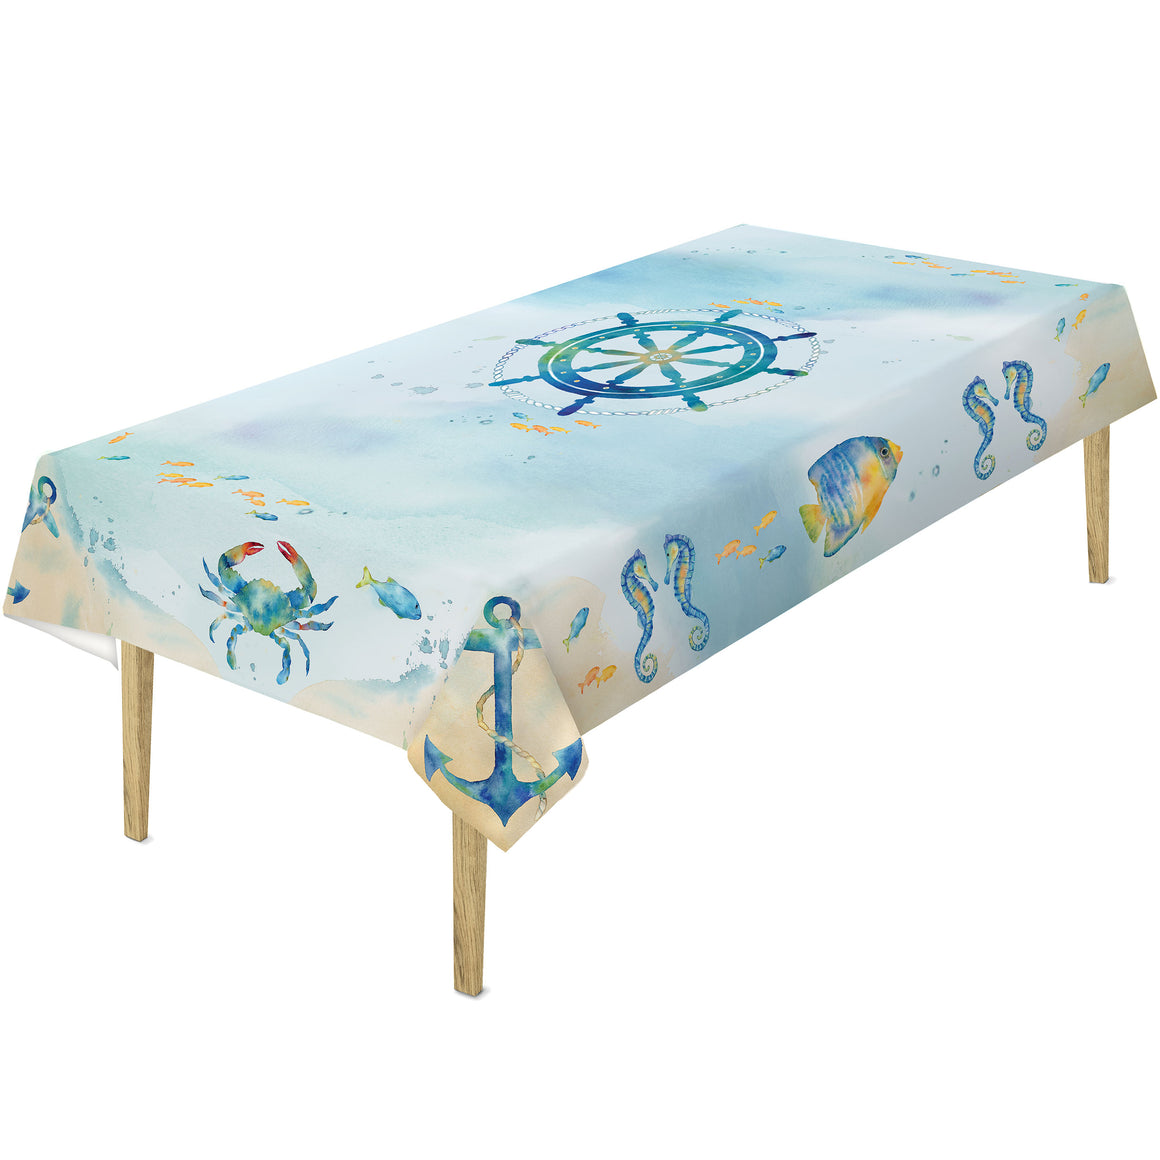 "Add a splash of fun to your dining room or outdoor space with Laural Home's ""Sea Splash Tablecloth"". This fun arrangement of iconic sea life motifs arranged on this tablecloth makes a great summer piece for those who love the vibrant energy of the sea."